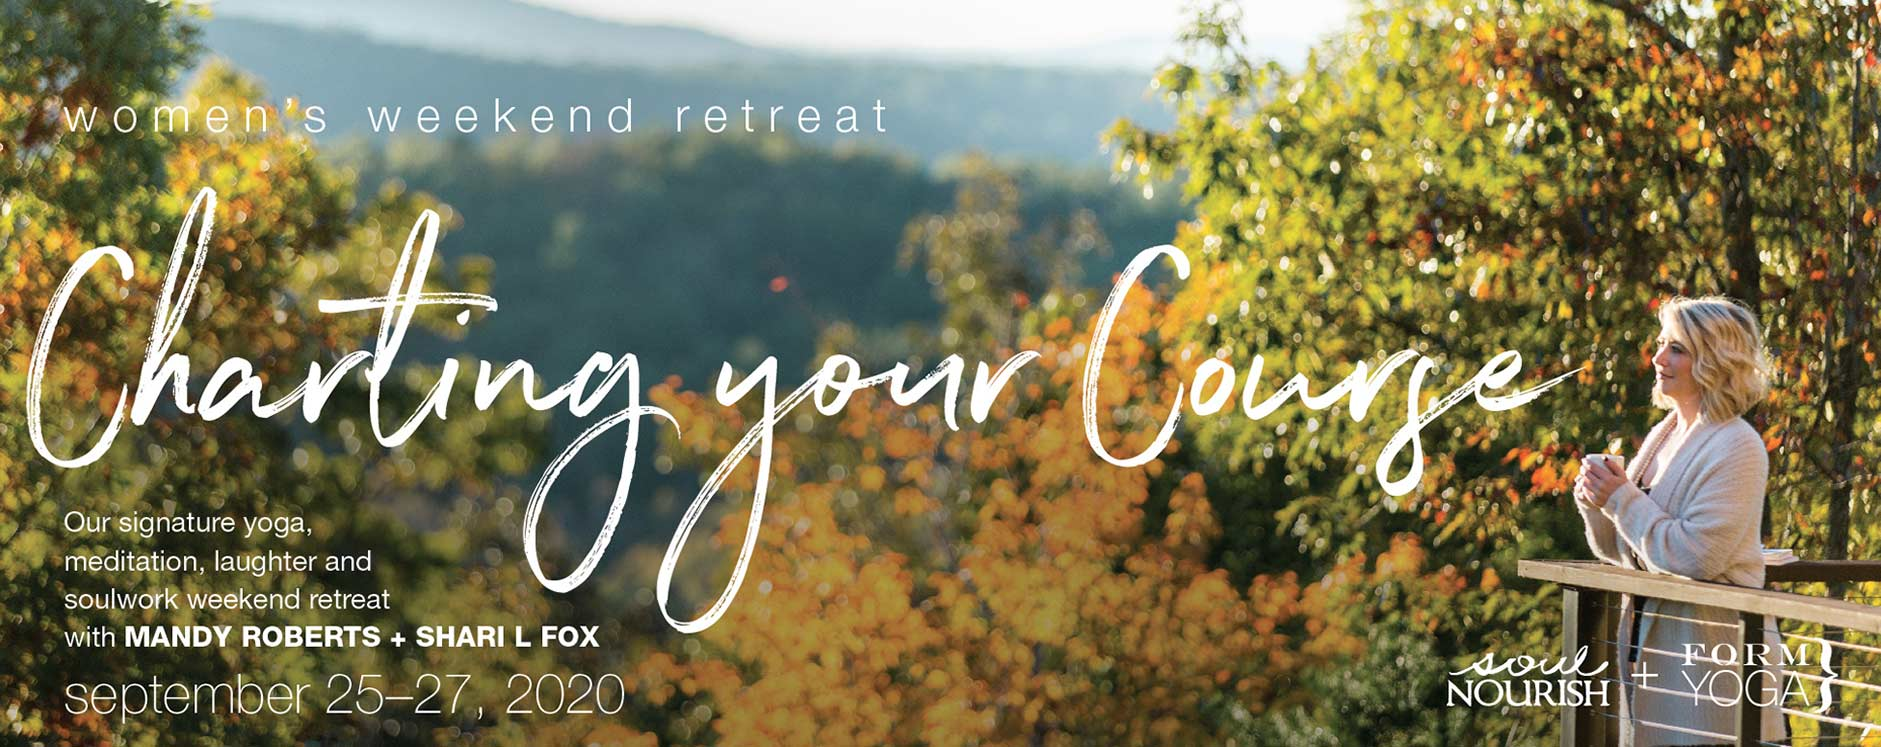 women's weekend retreat elohee soul nourish form yoga